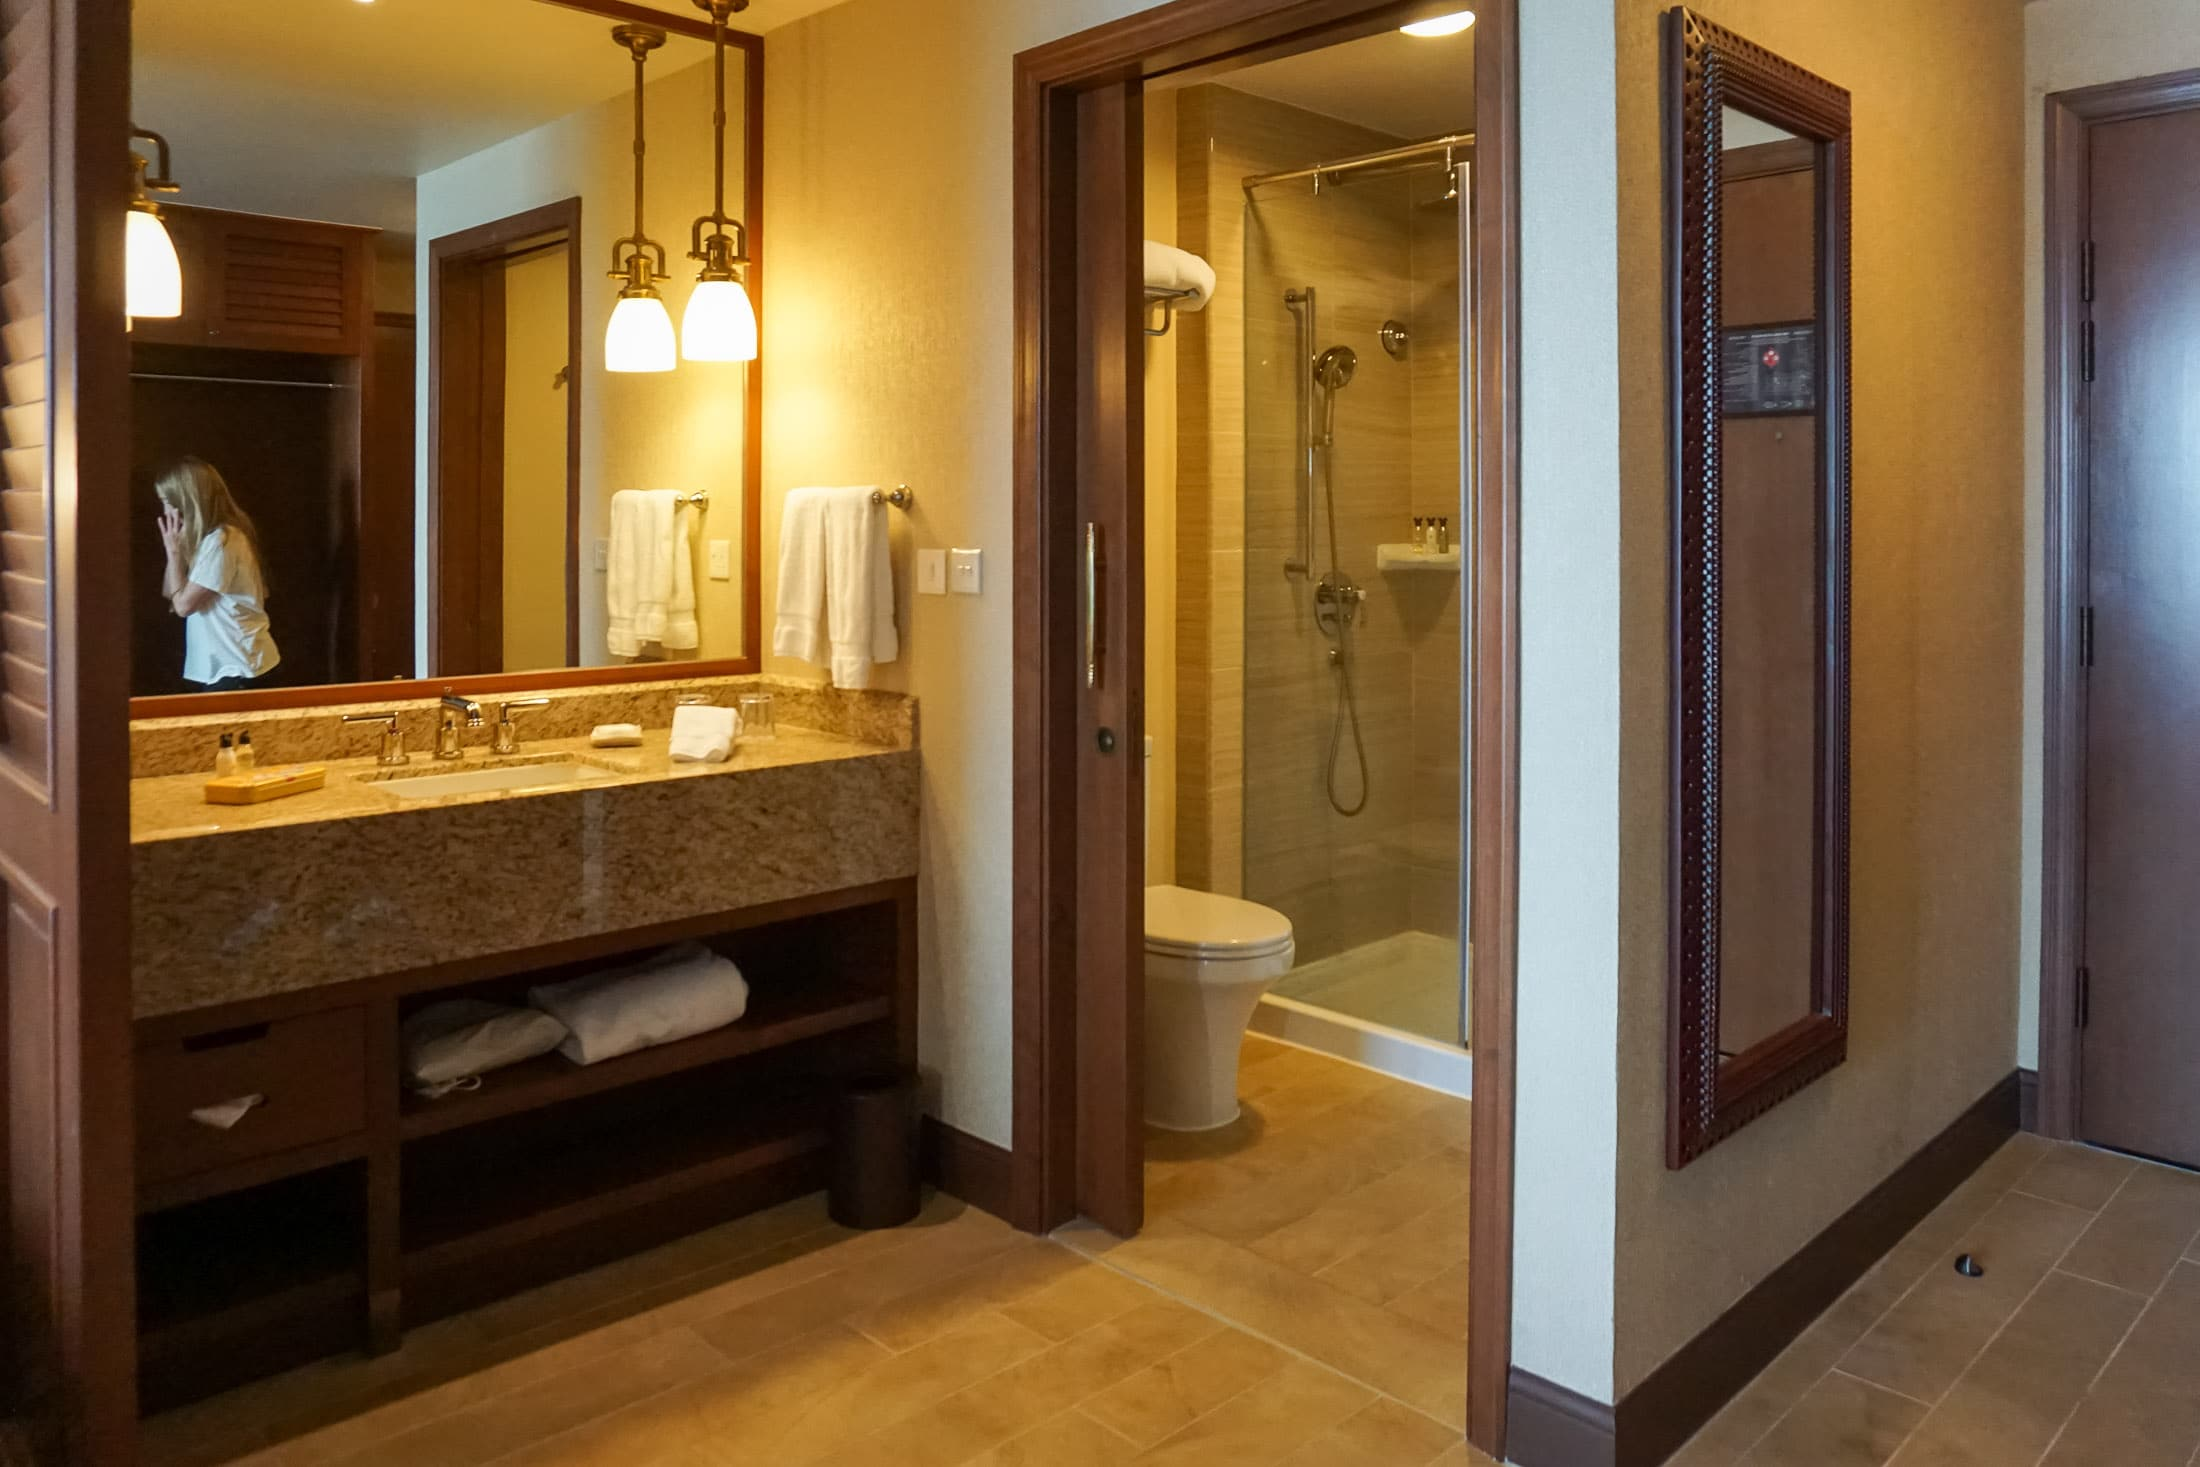 Bathroom at Disney Explorers Lodge, Hong Kong Disneyland